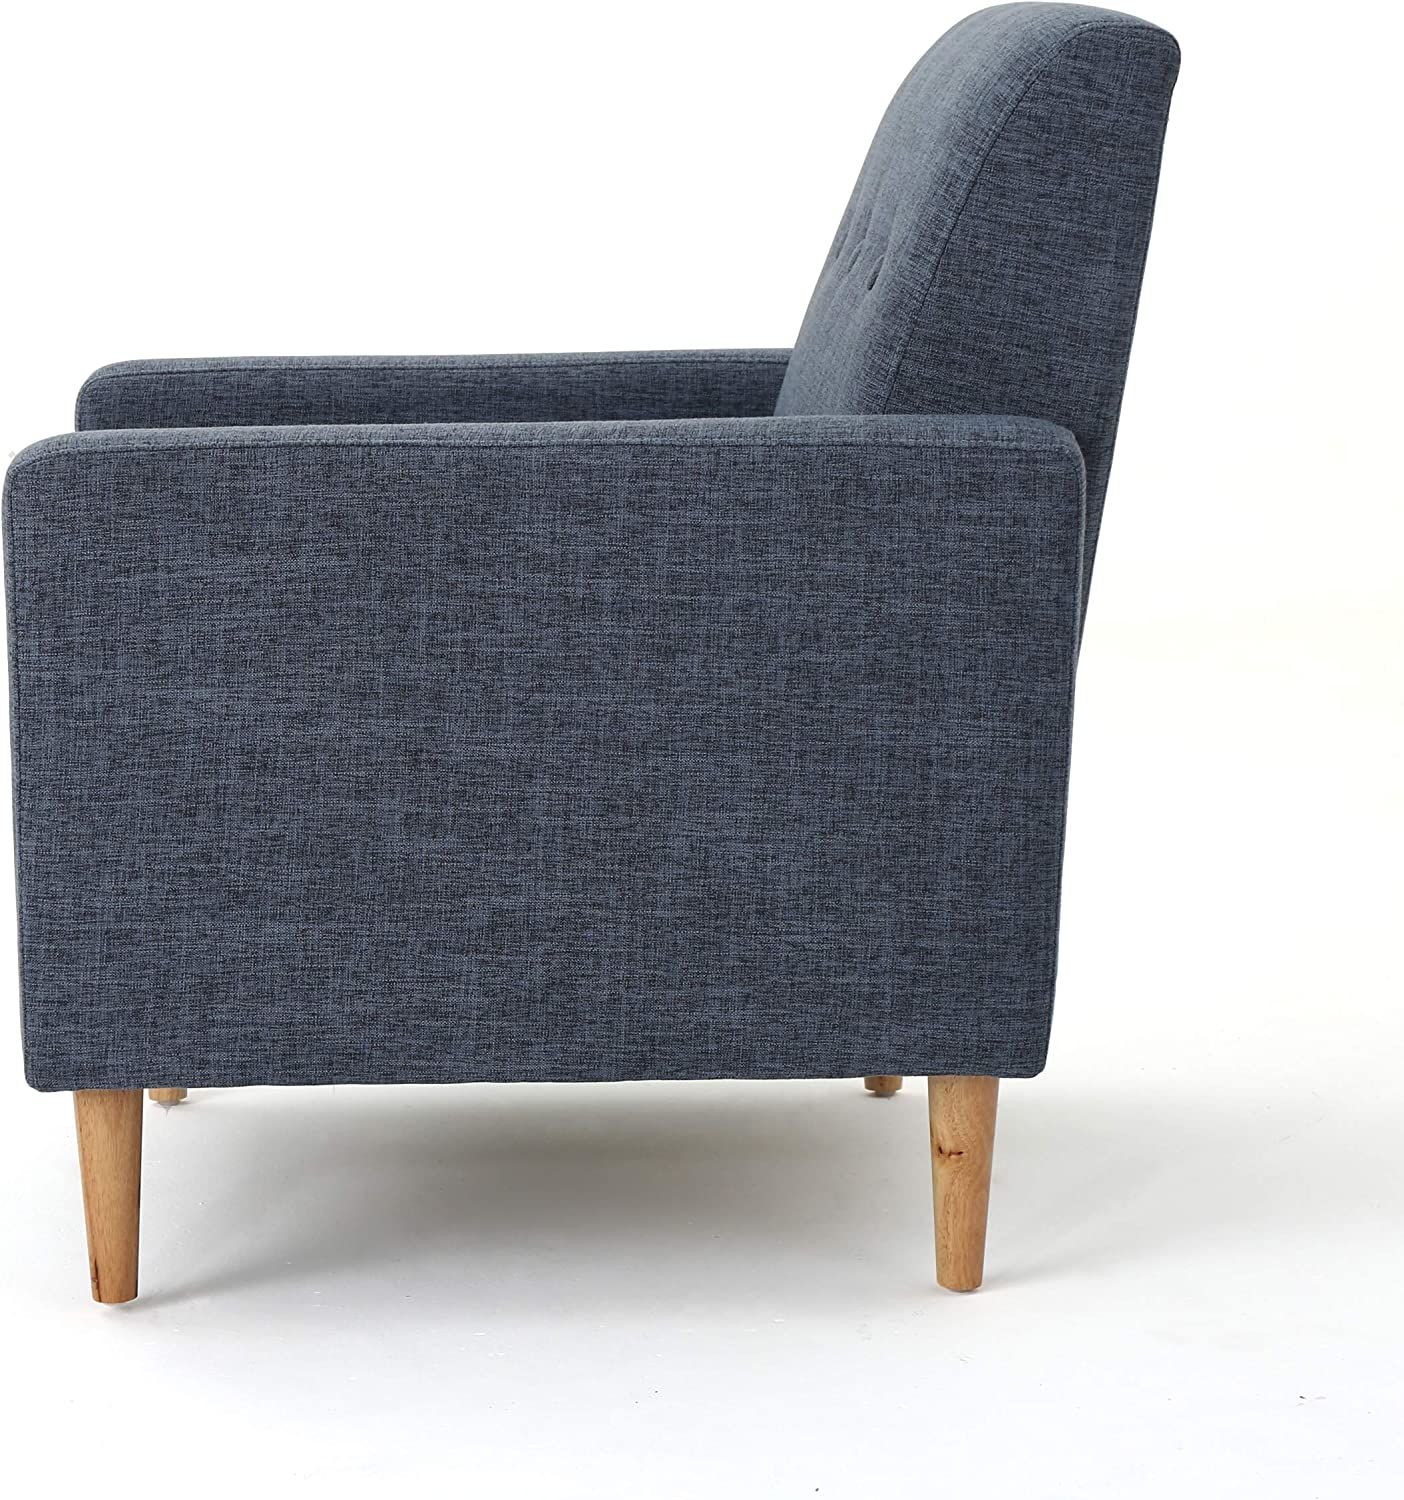 Christopher Knight Home Sawyer Mid-Century Modern Fabric Club Chair, Dark Blue / Natural